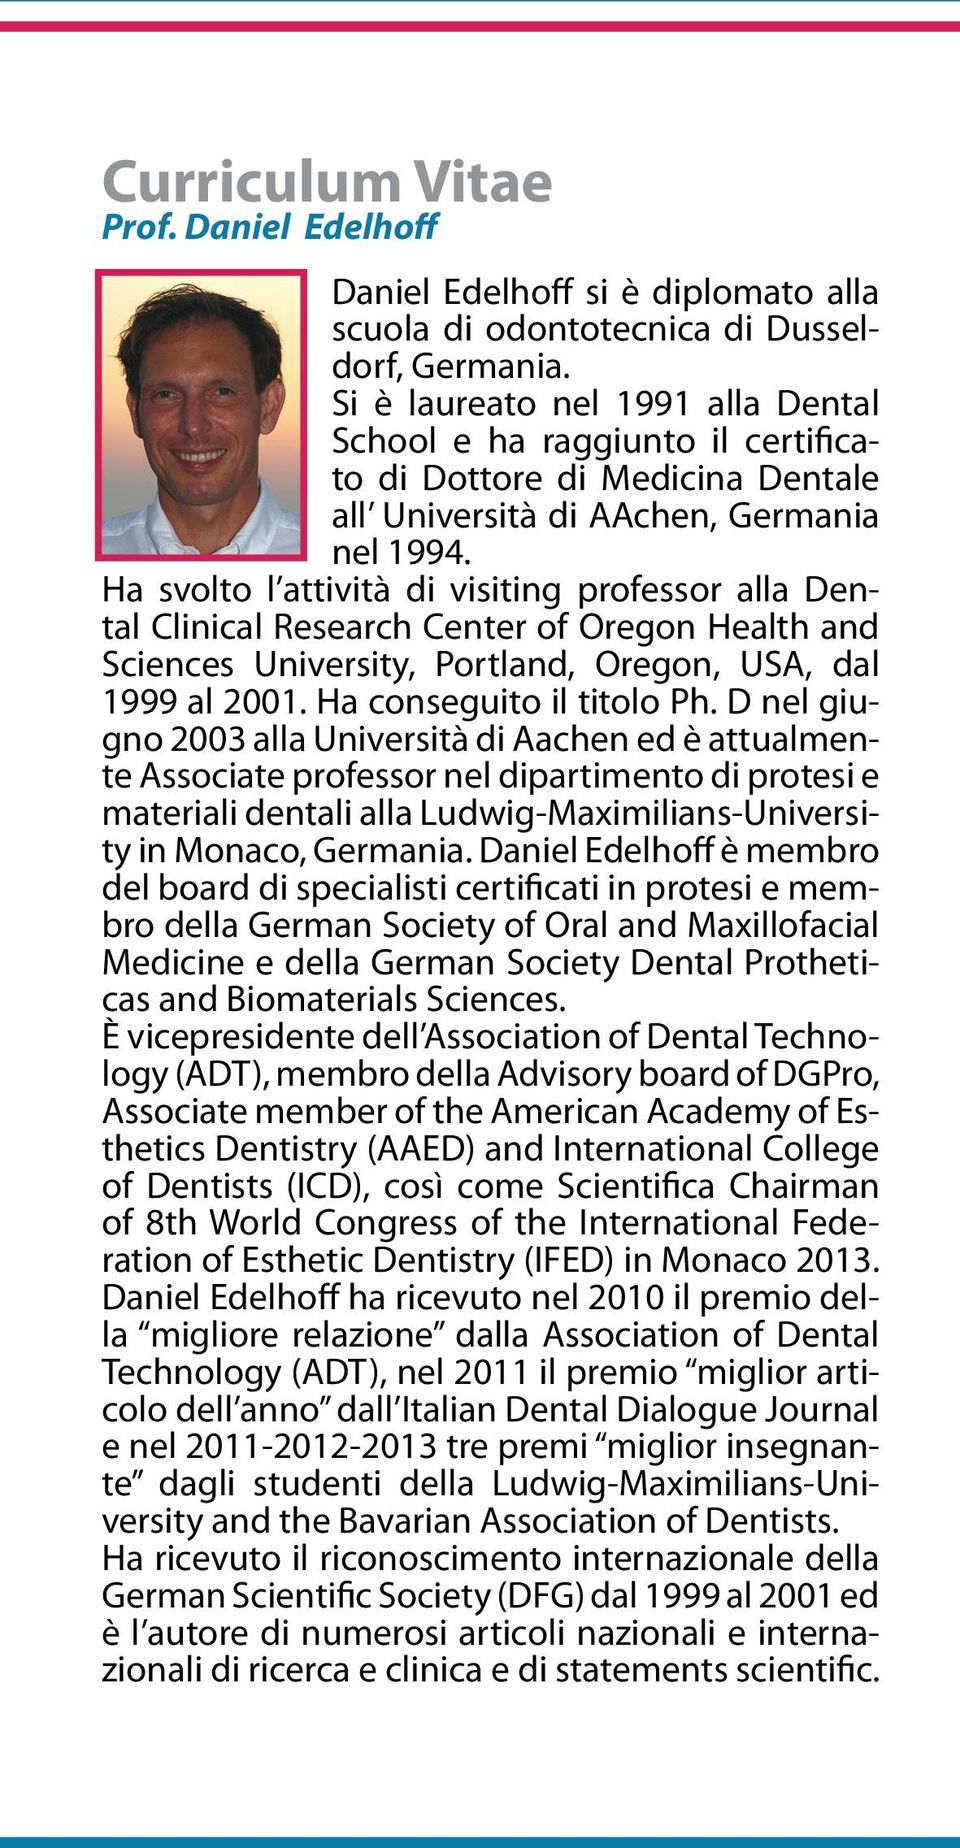 Ha svolto l attività di visiting professor alla Dental Clinical Research Center of Oregon Health and Sciences University, Portland, Oregon, USA, dal 1999 al 2001. Ha conseguito il titolo Ph.